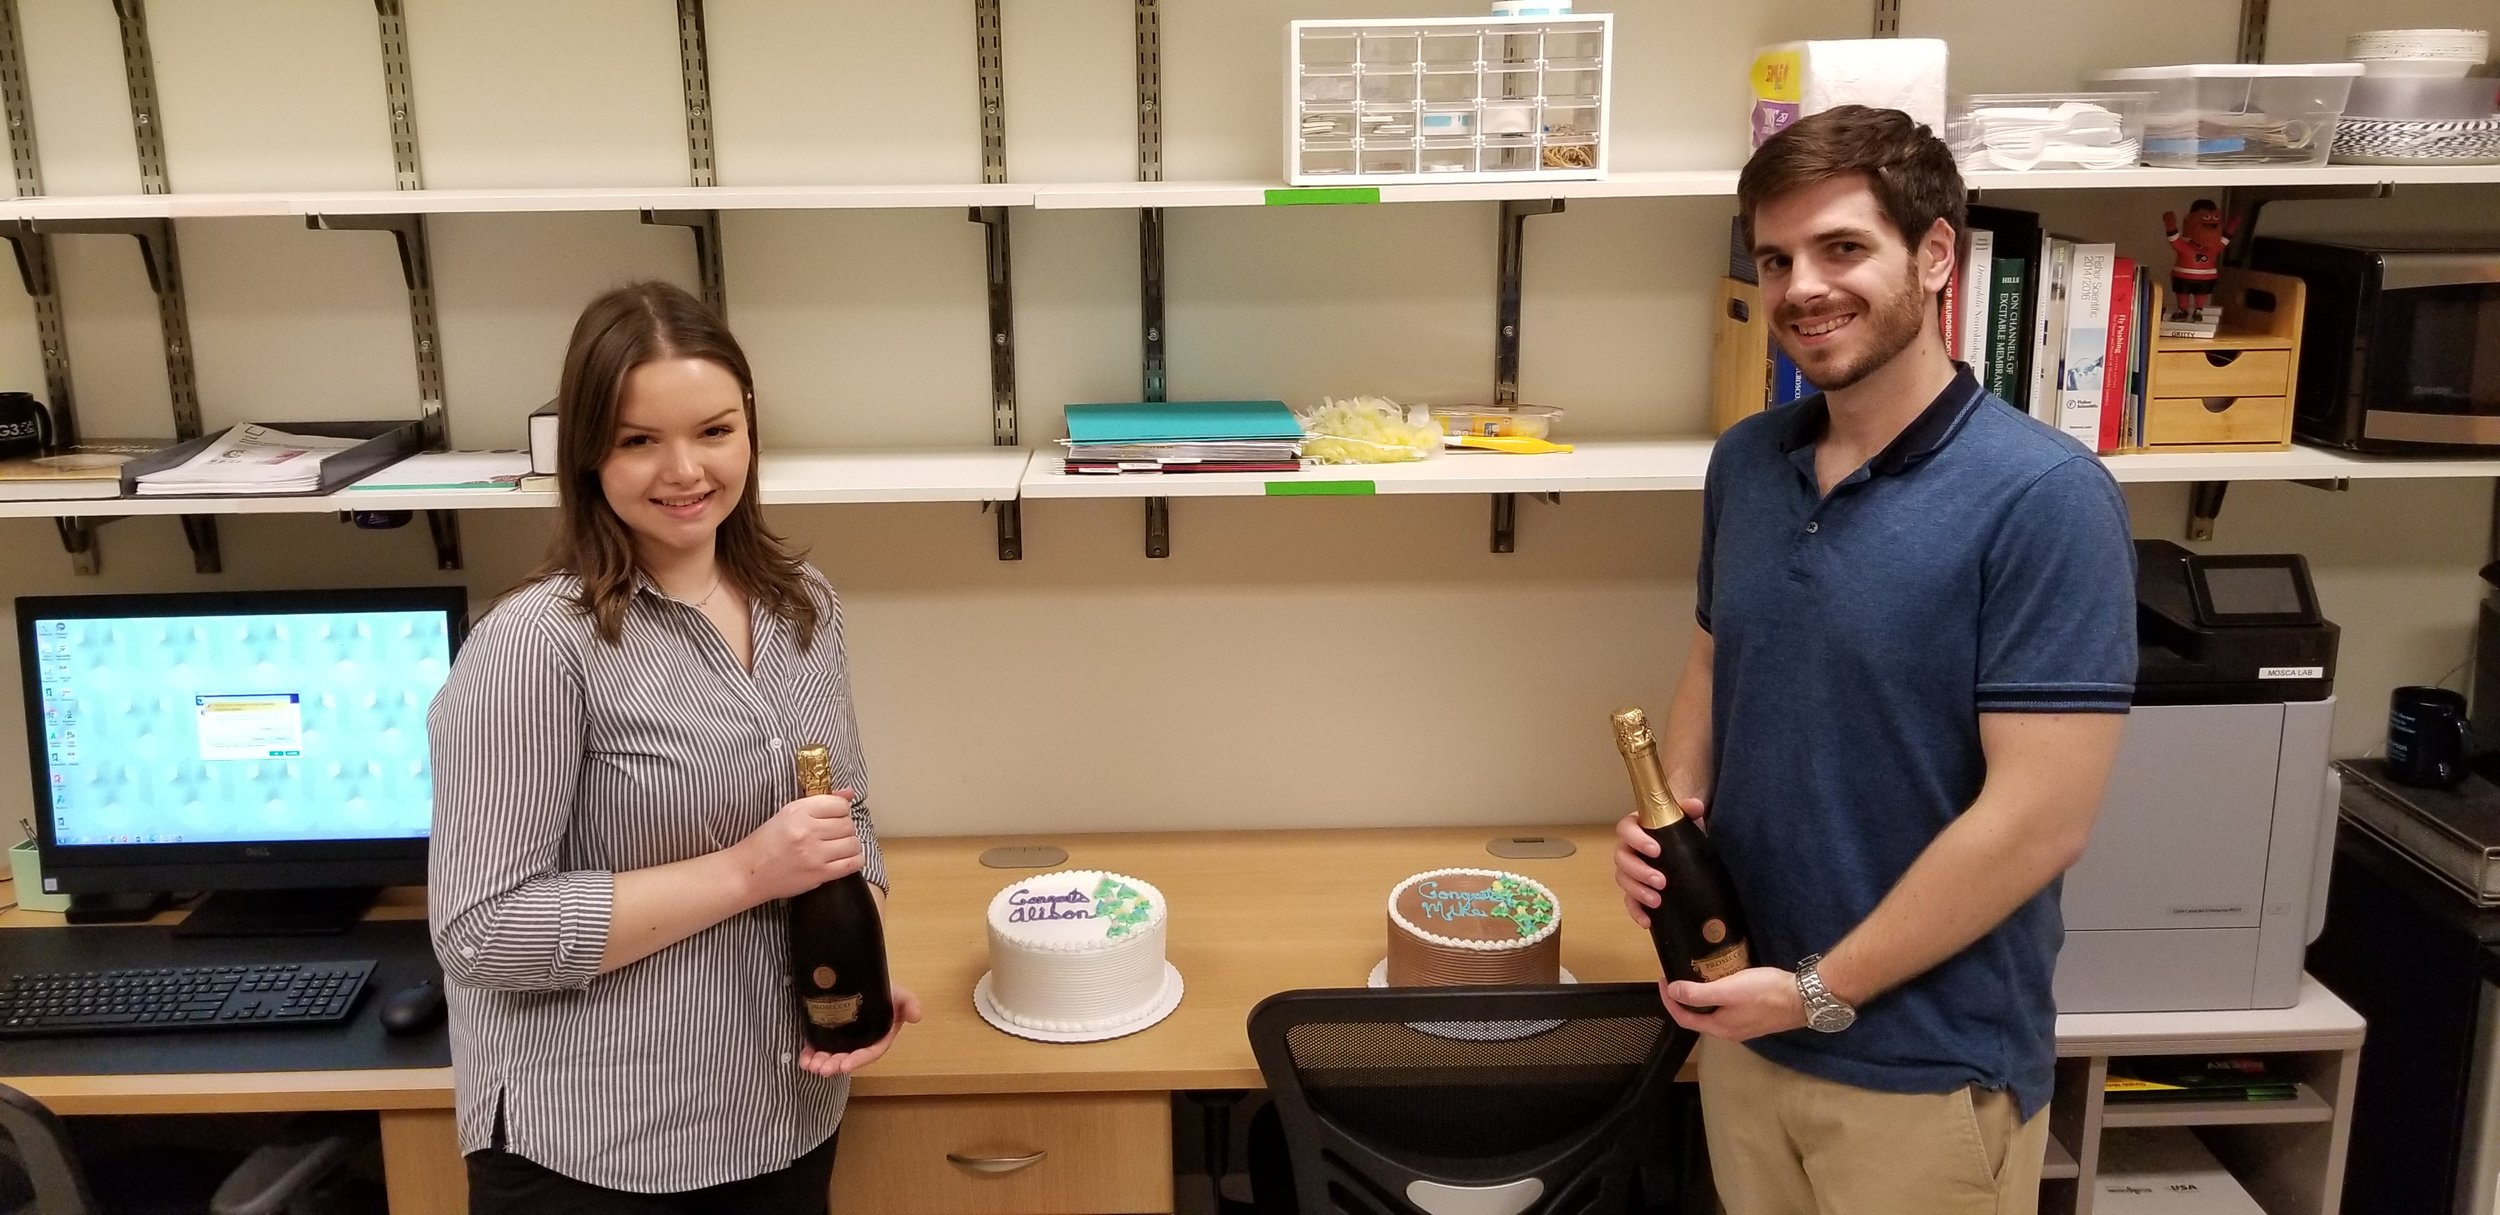 Congrats to Alison and Mike for becoming doctoral candidates!